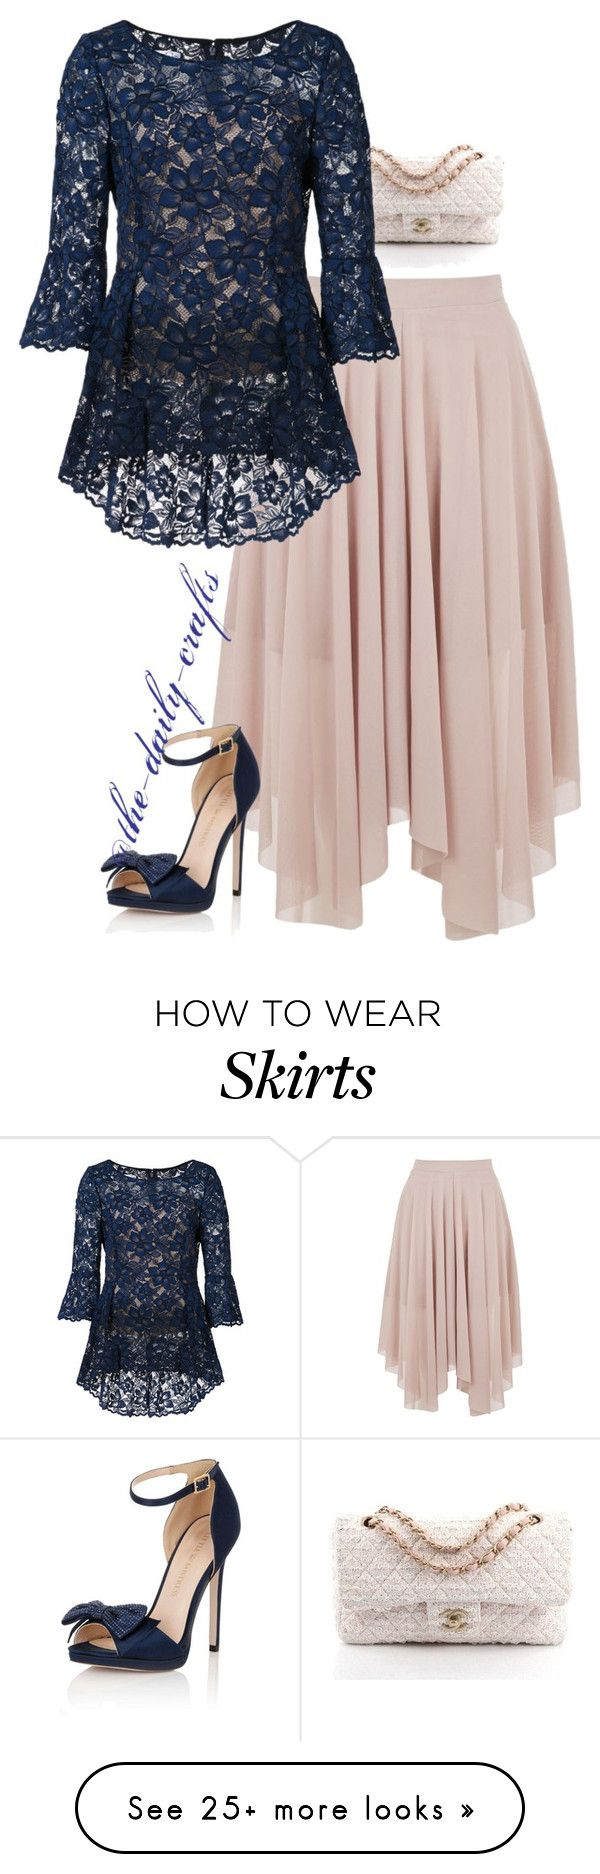 """""""Untitled #243"""" by the-daily-crafts on Polyvore featuring Topshop, Chanel, Oscar de la Renta and Little Mistress"""